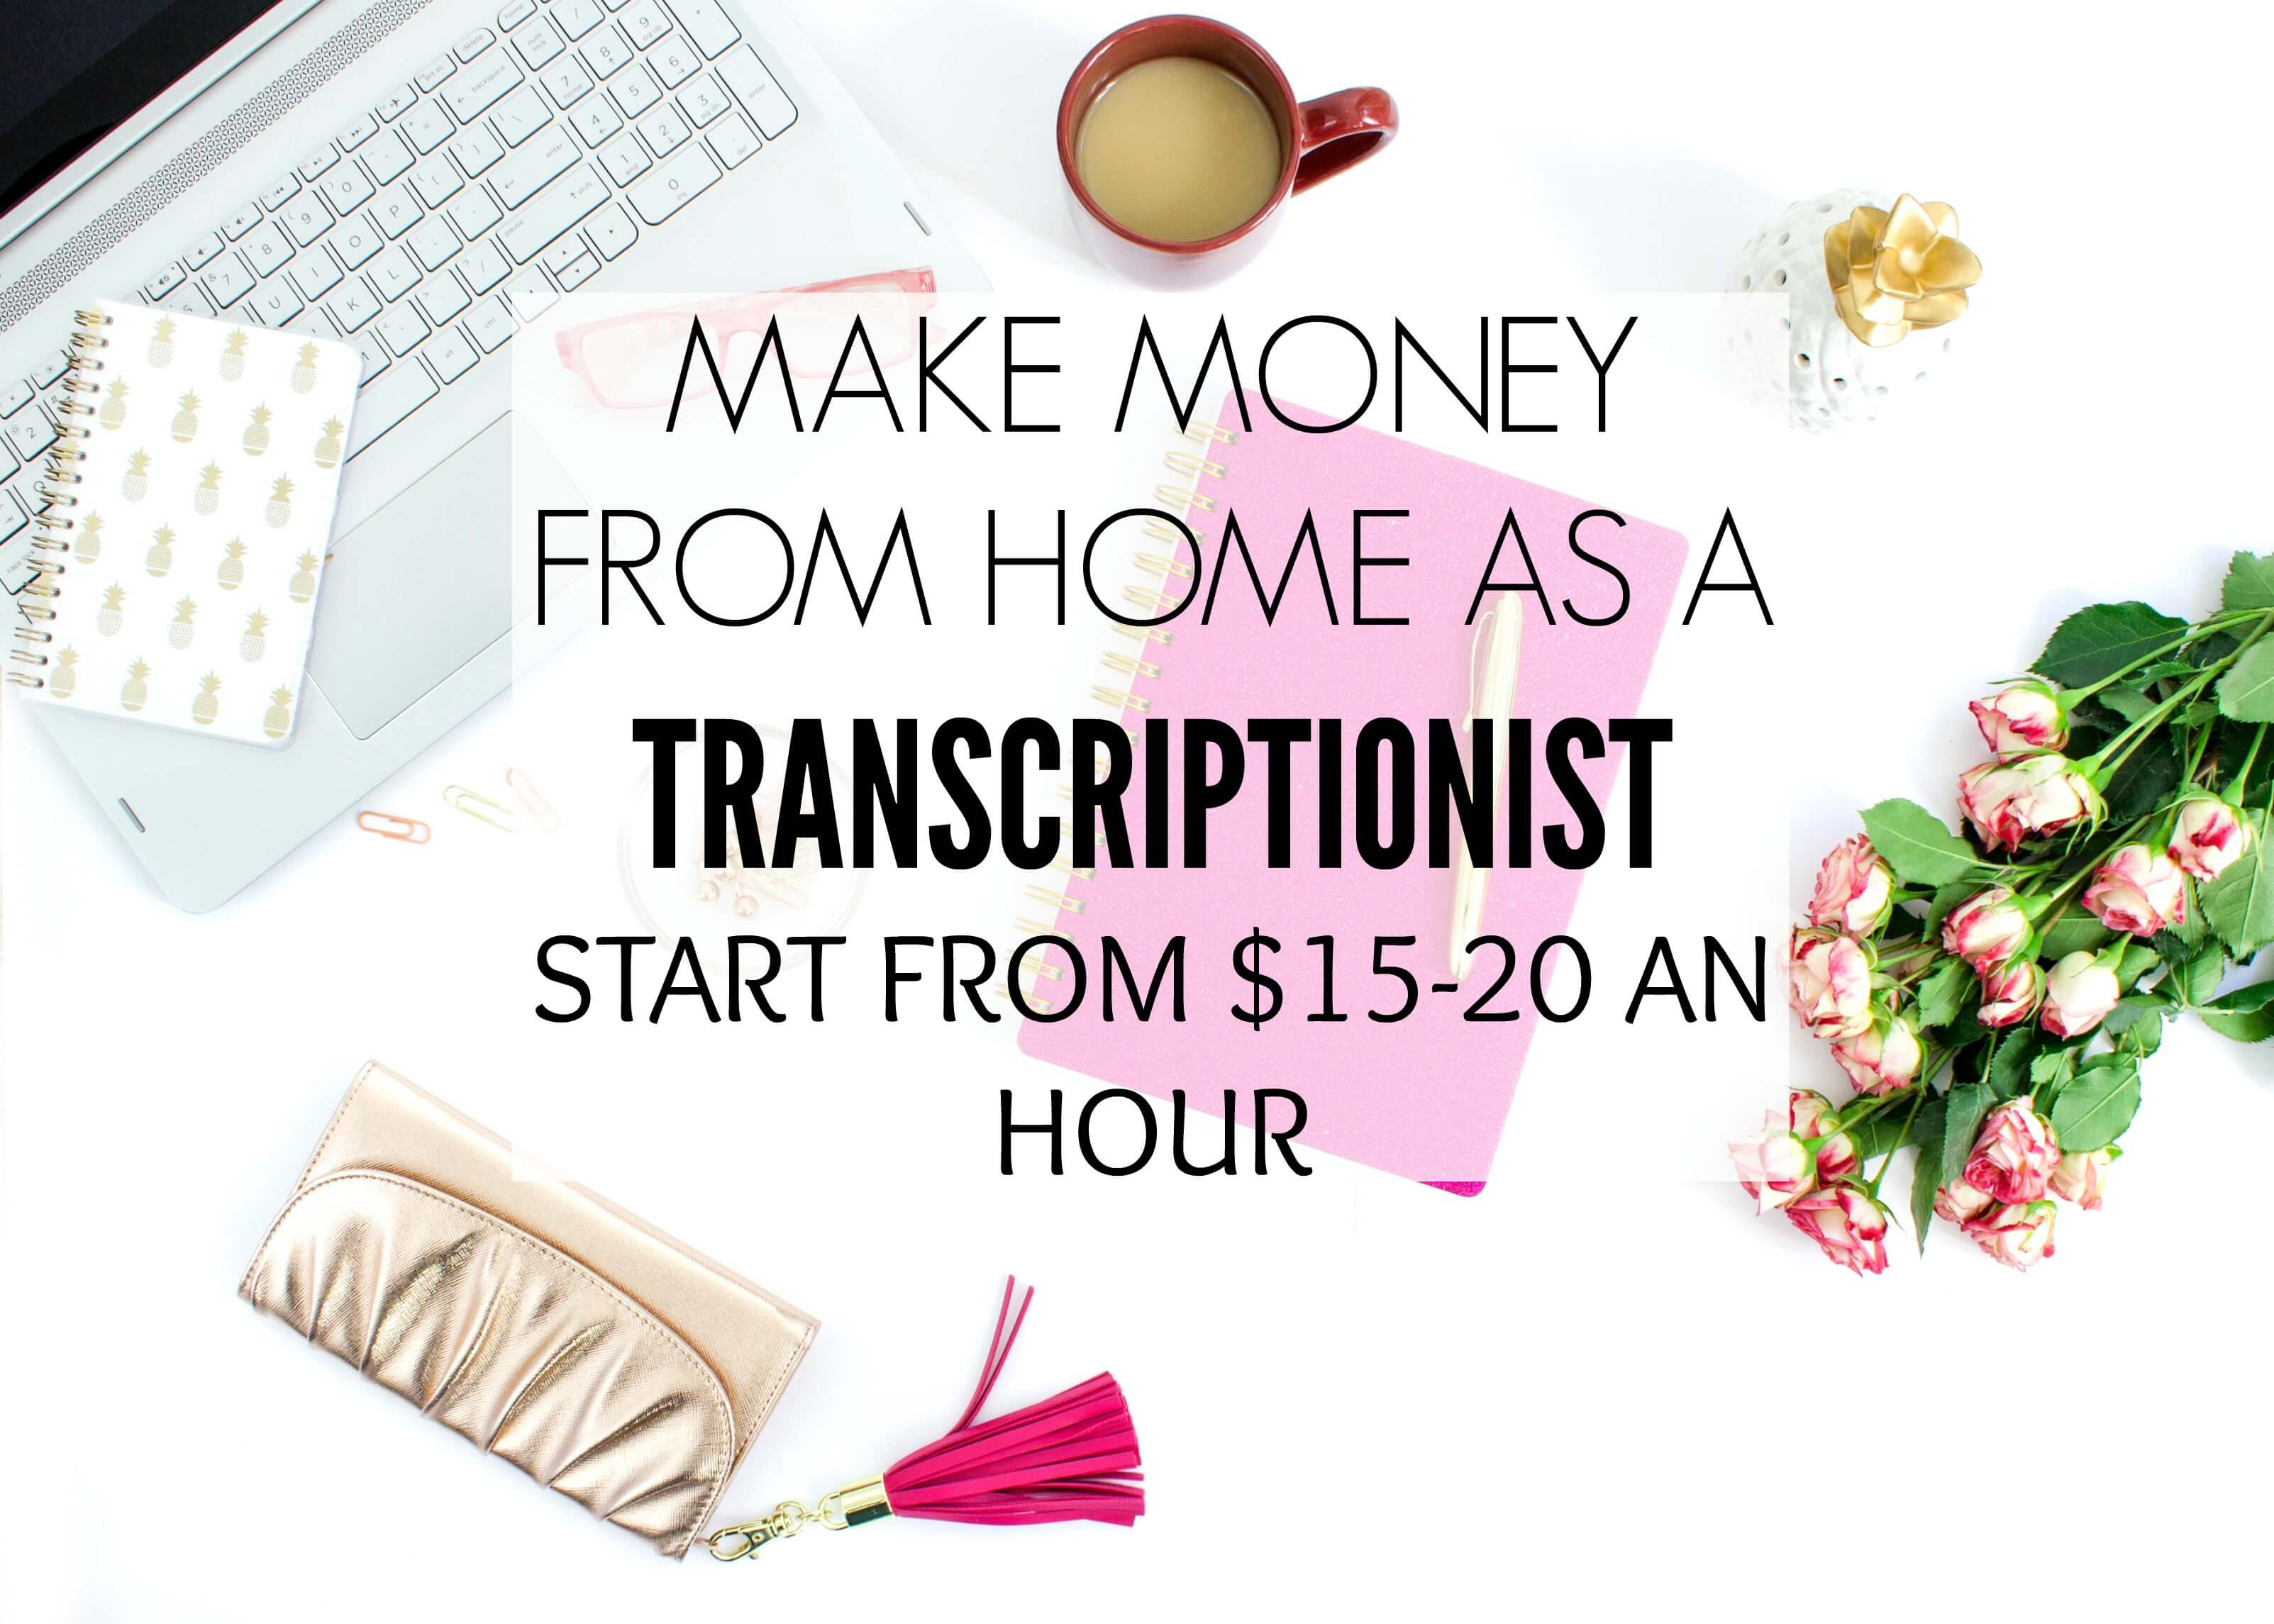 Make money from home as a transcriptionist crowd work news - How to earn money in home design ...